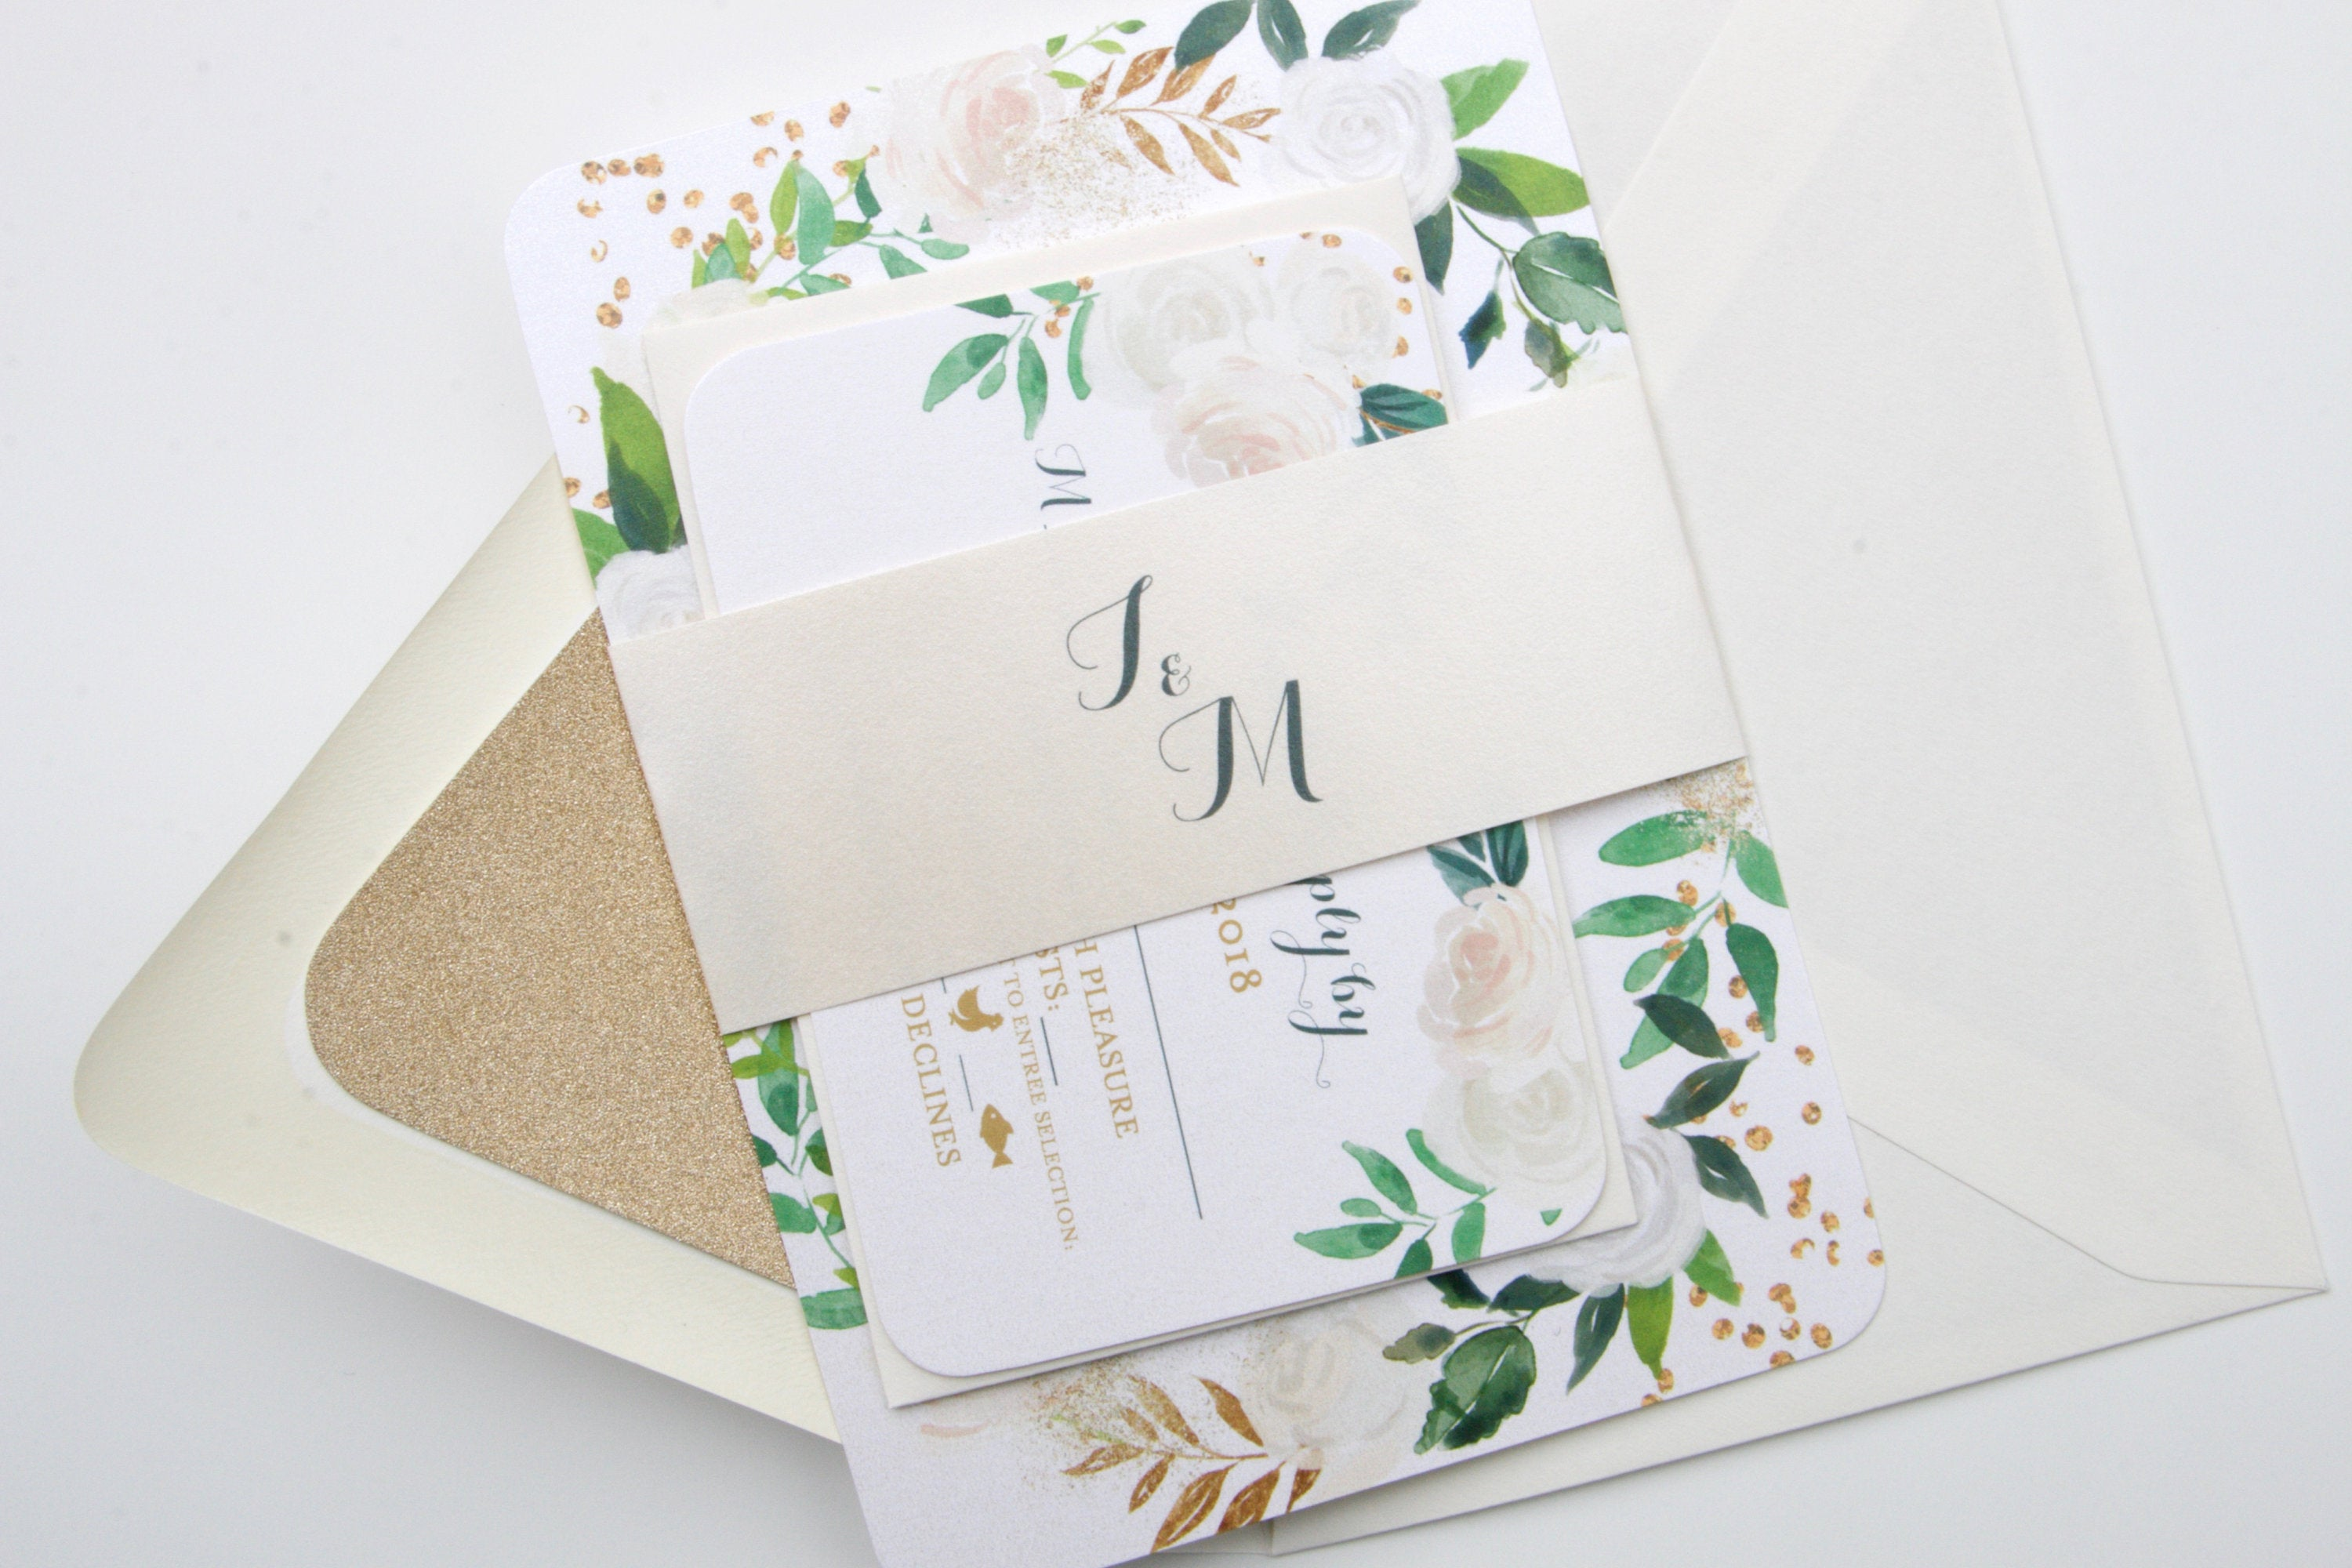 Greenery and gold wedding invitations cream white roses floral greenery and gold wedding invitations cream white roses floral with greenery printed wedding invitation suite isla suite junglespirit Images